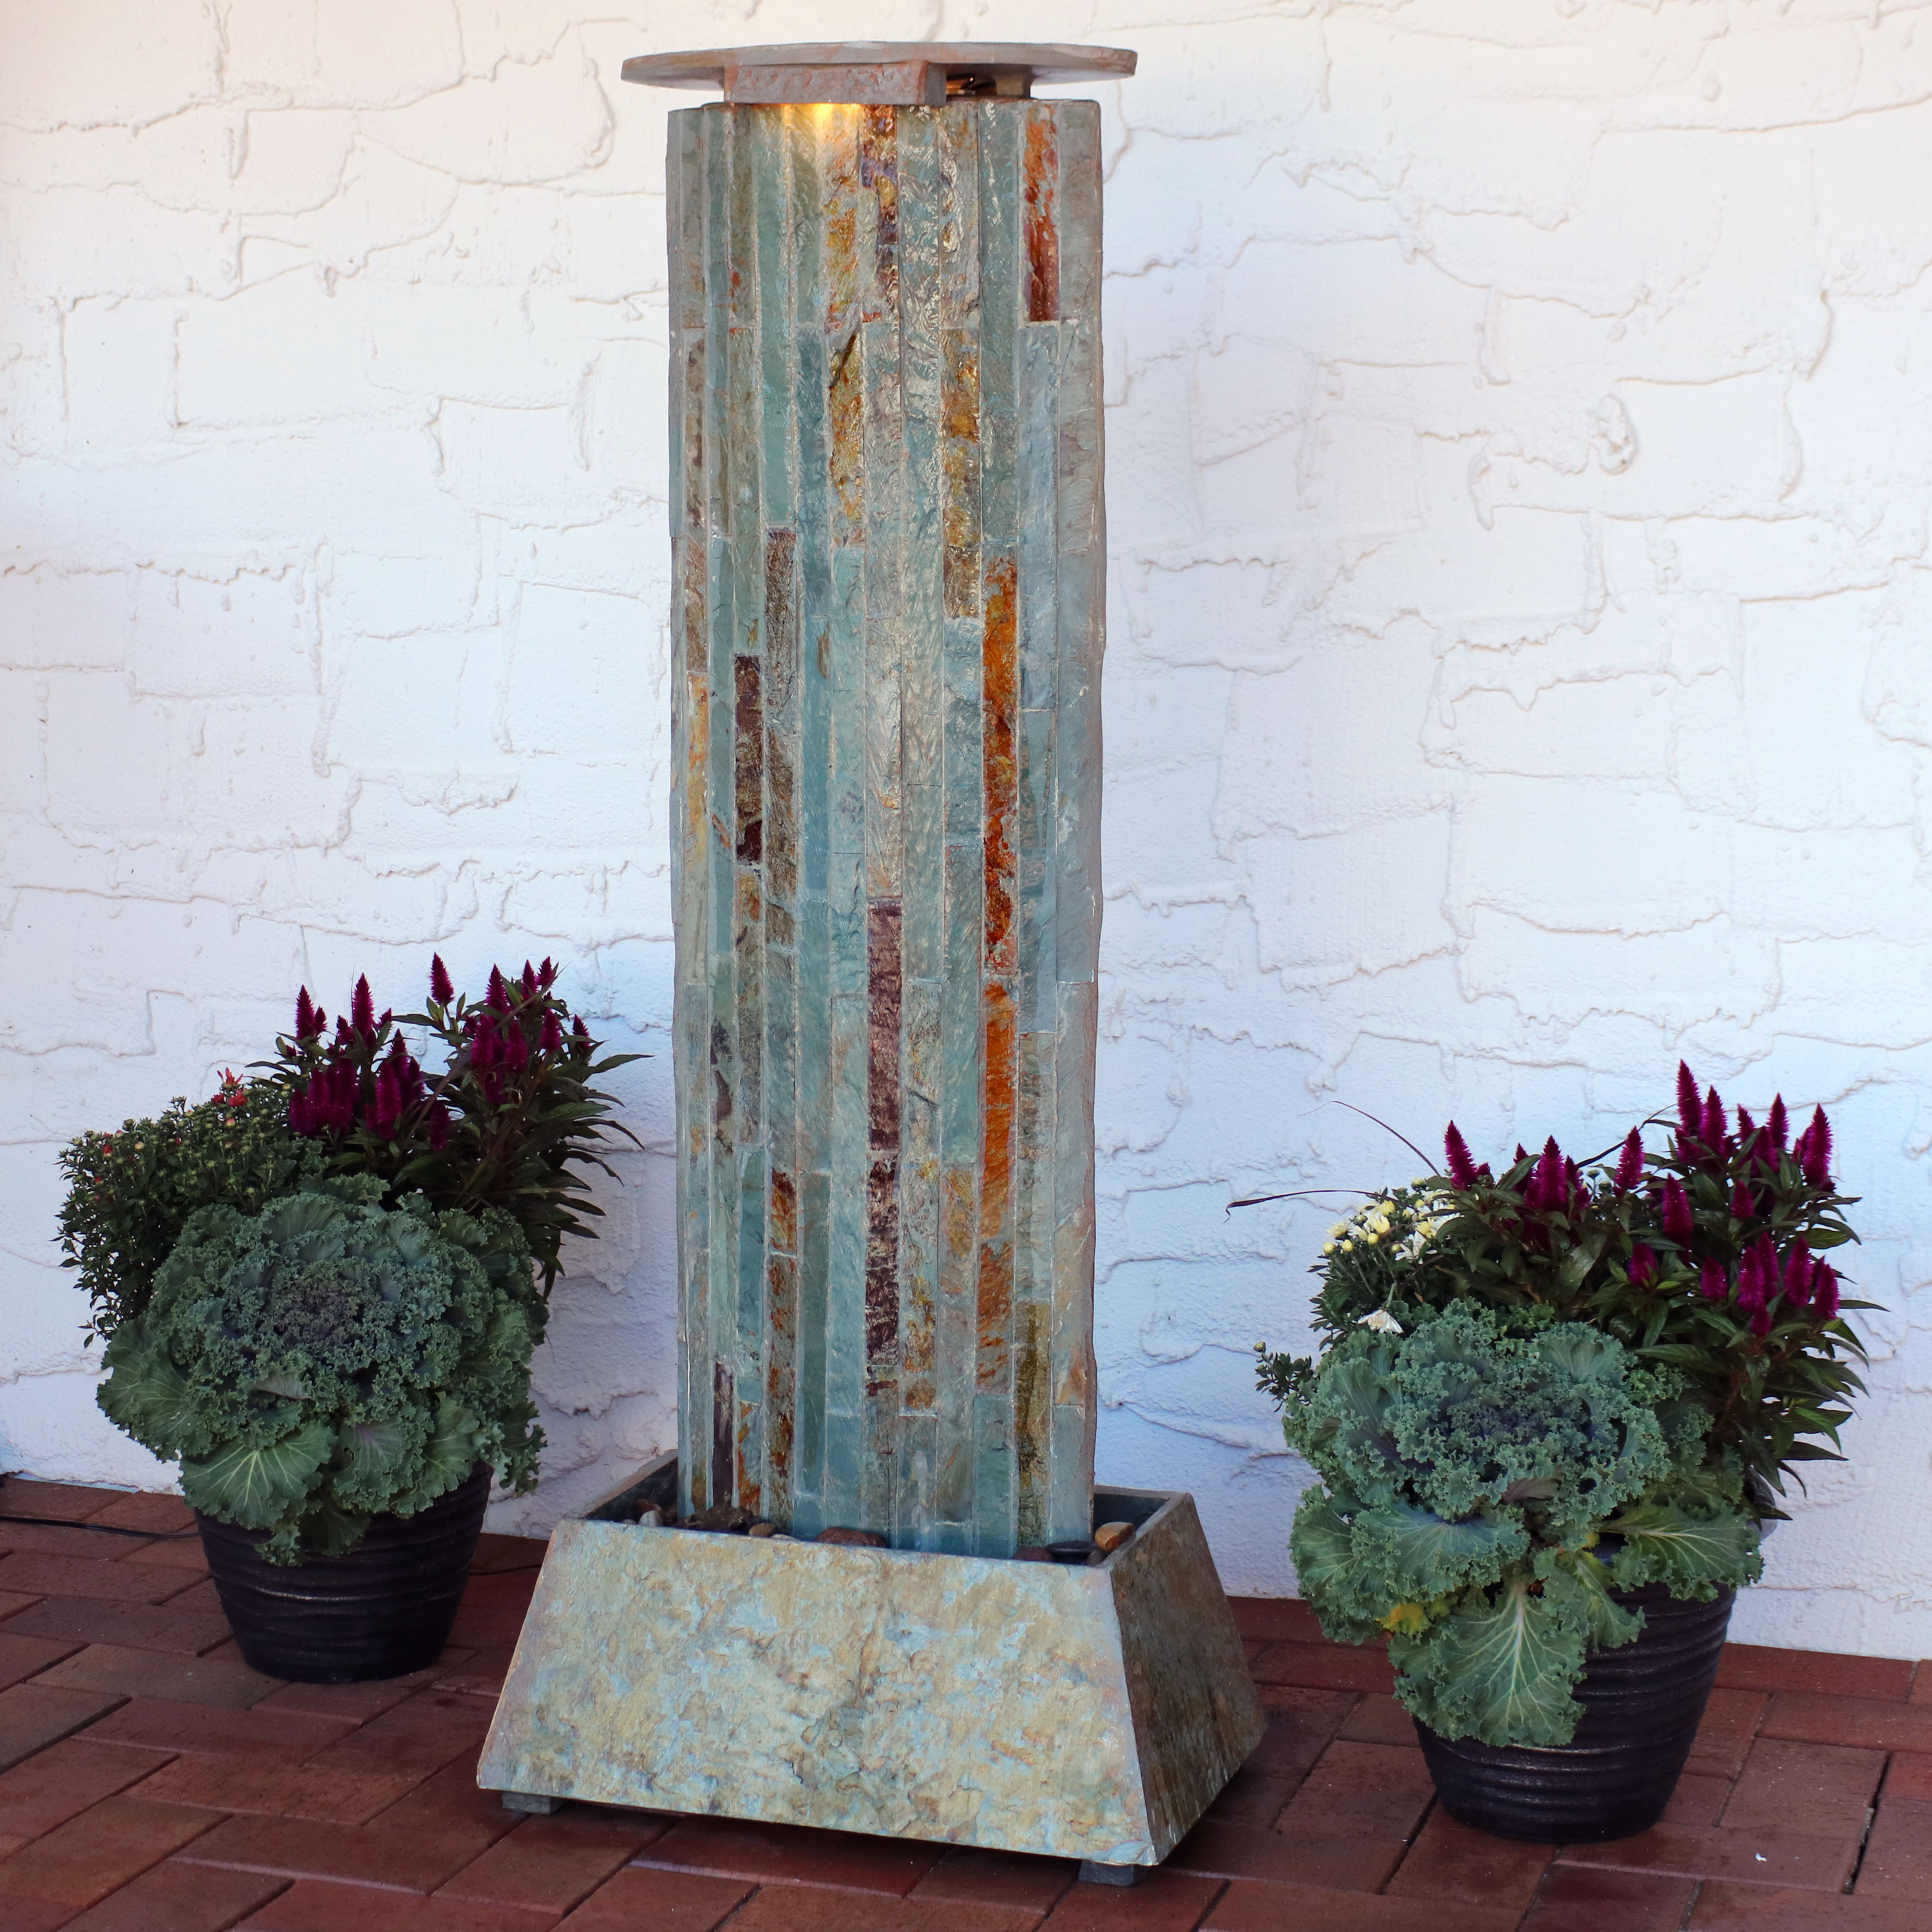 Sunnydaze Floor Water Fountain Tower, Indoor/Outdoor Use, Natural Slate, 49-Inch Tall